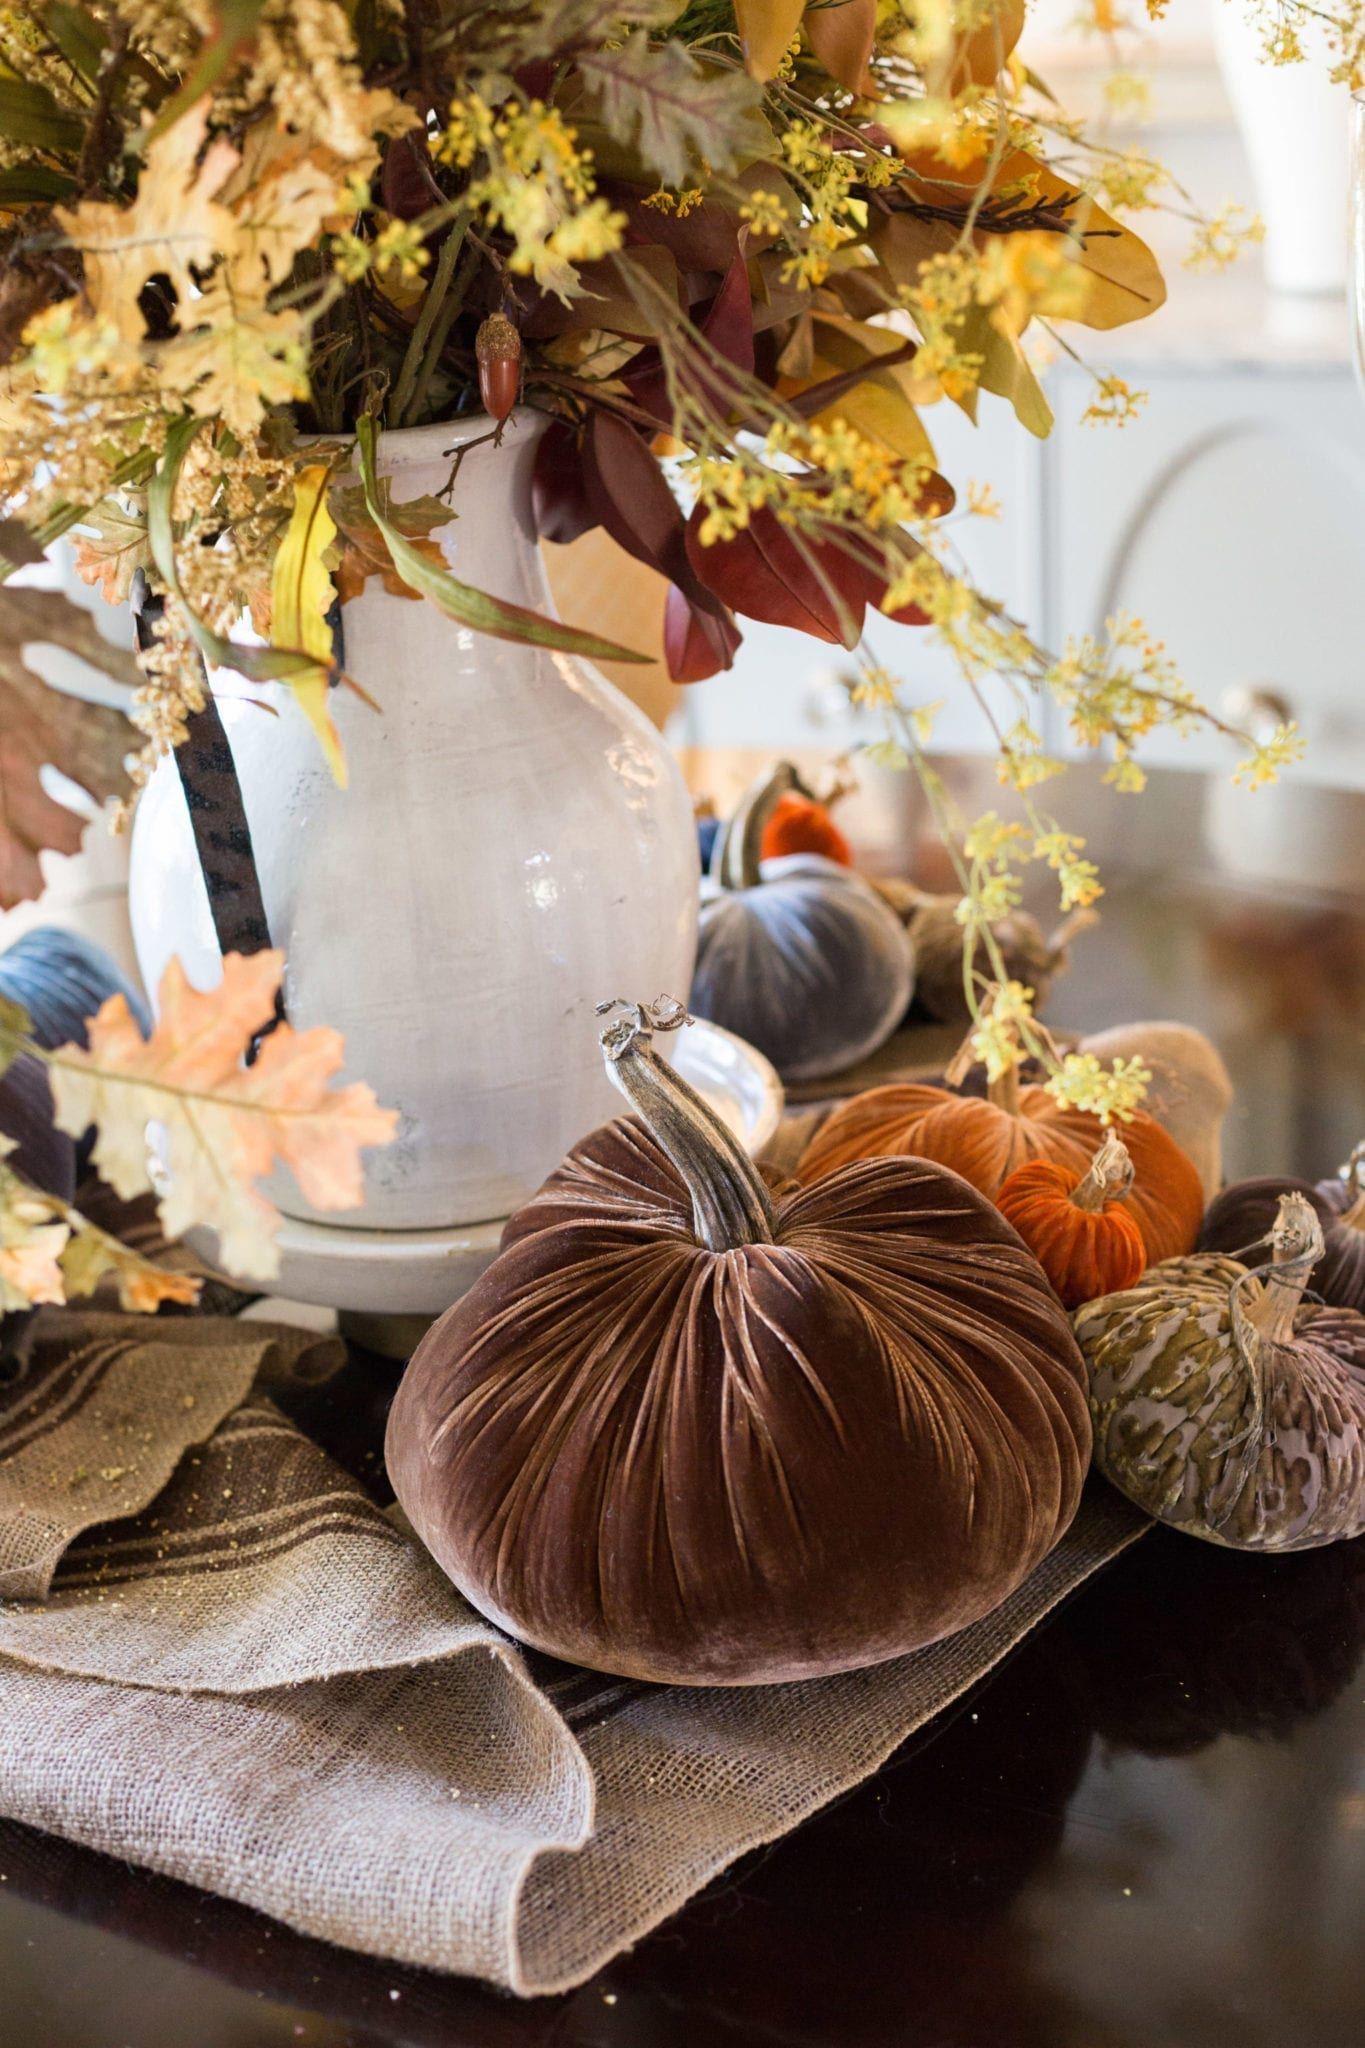 Fall velvet pumpkins. A beautiful farmhouse style table setting for Thanksgiving.